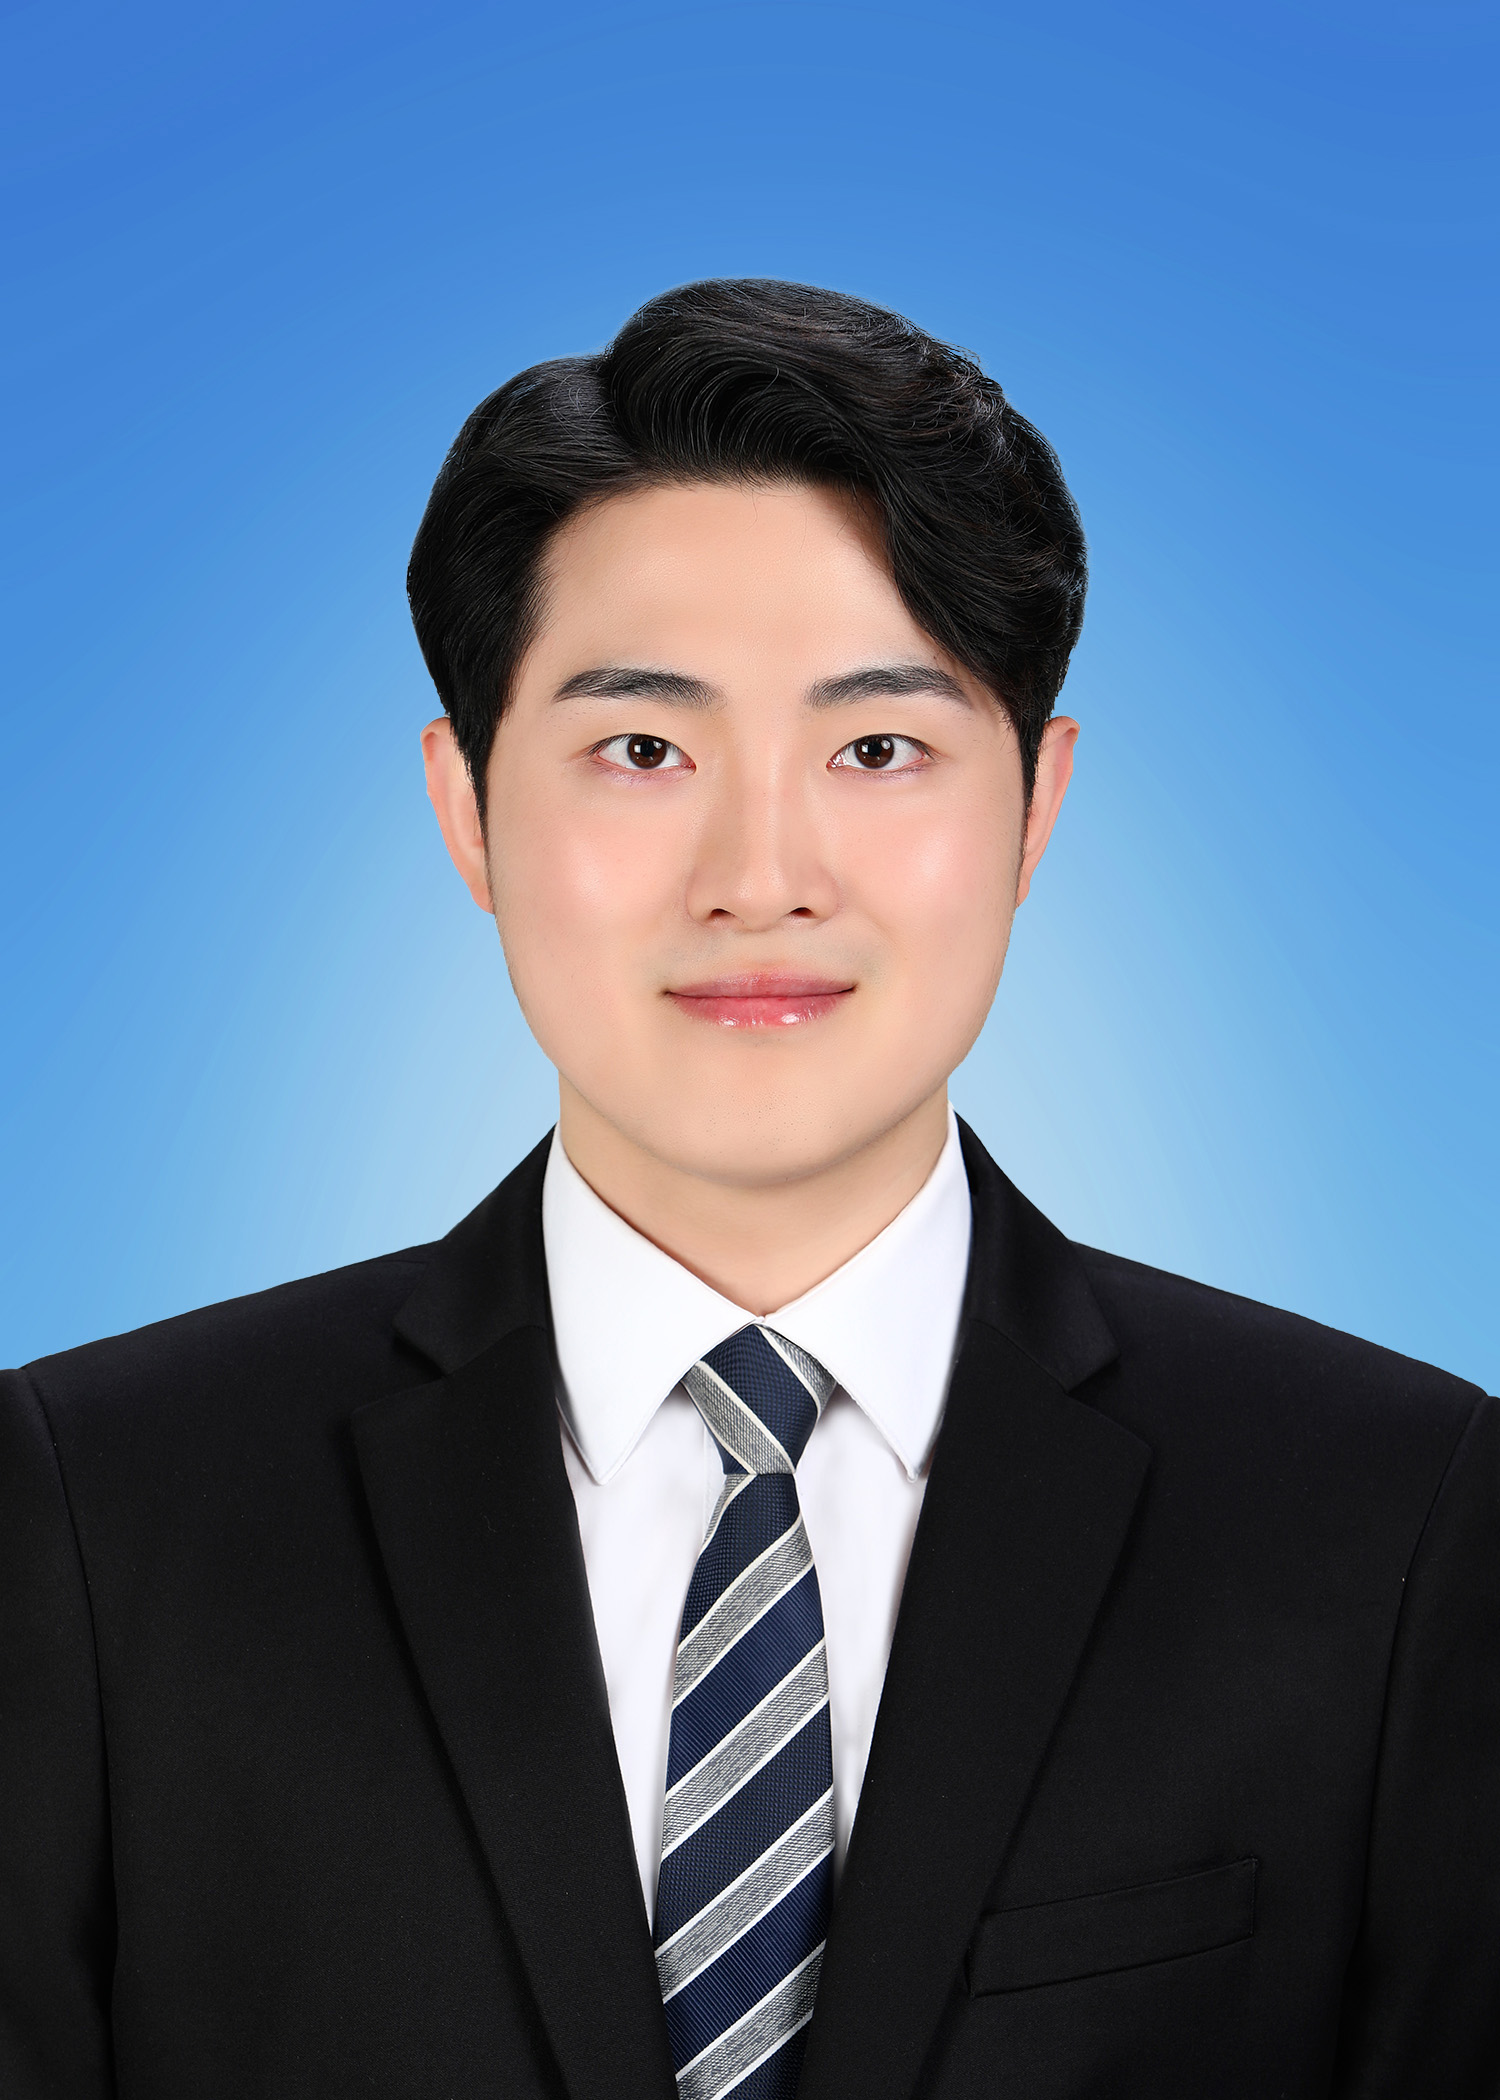 Jihwan Lee